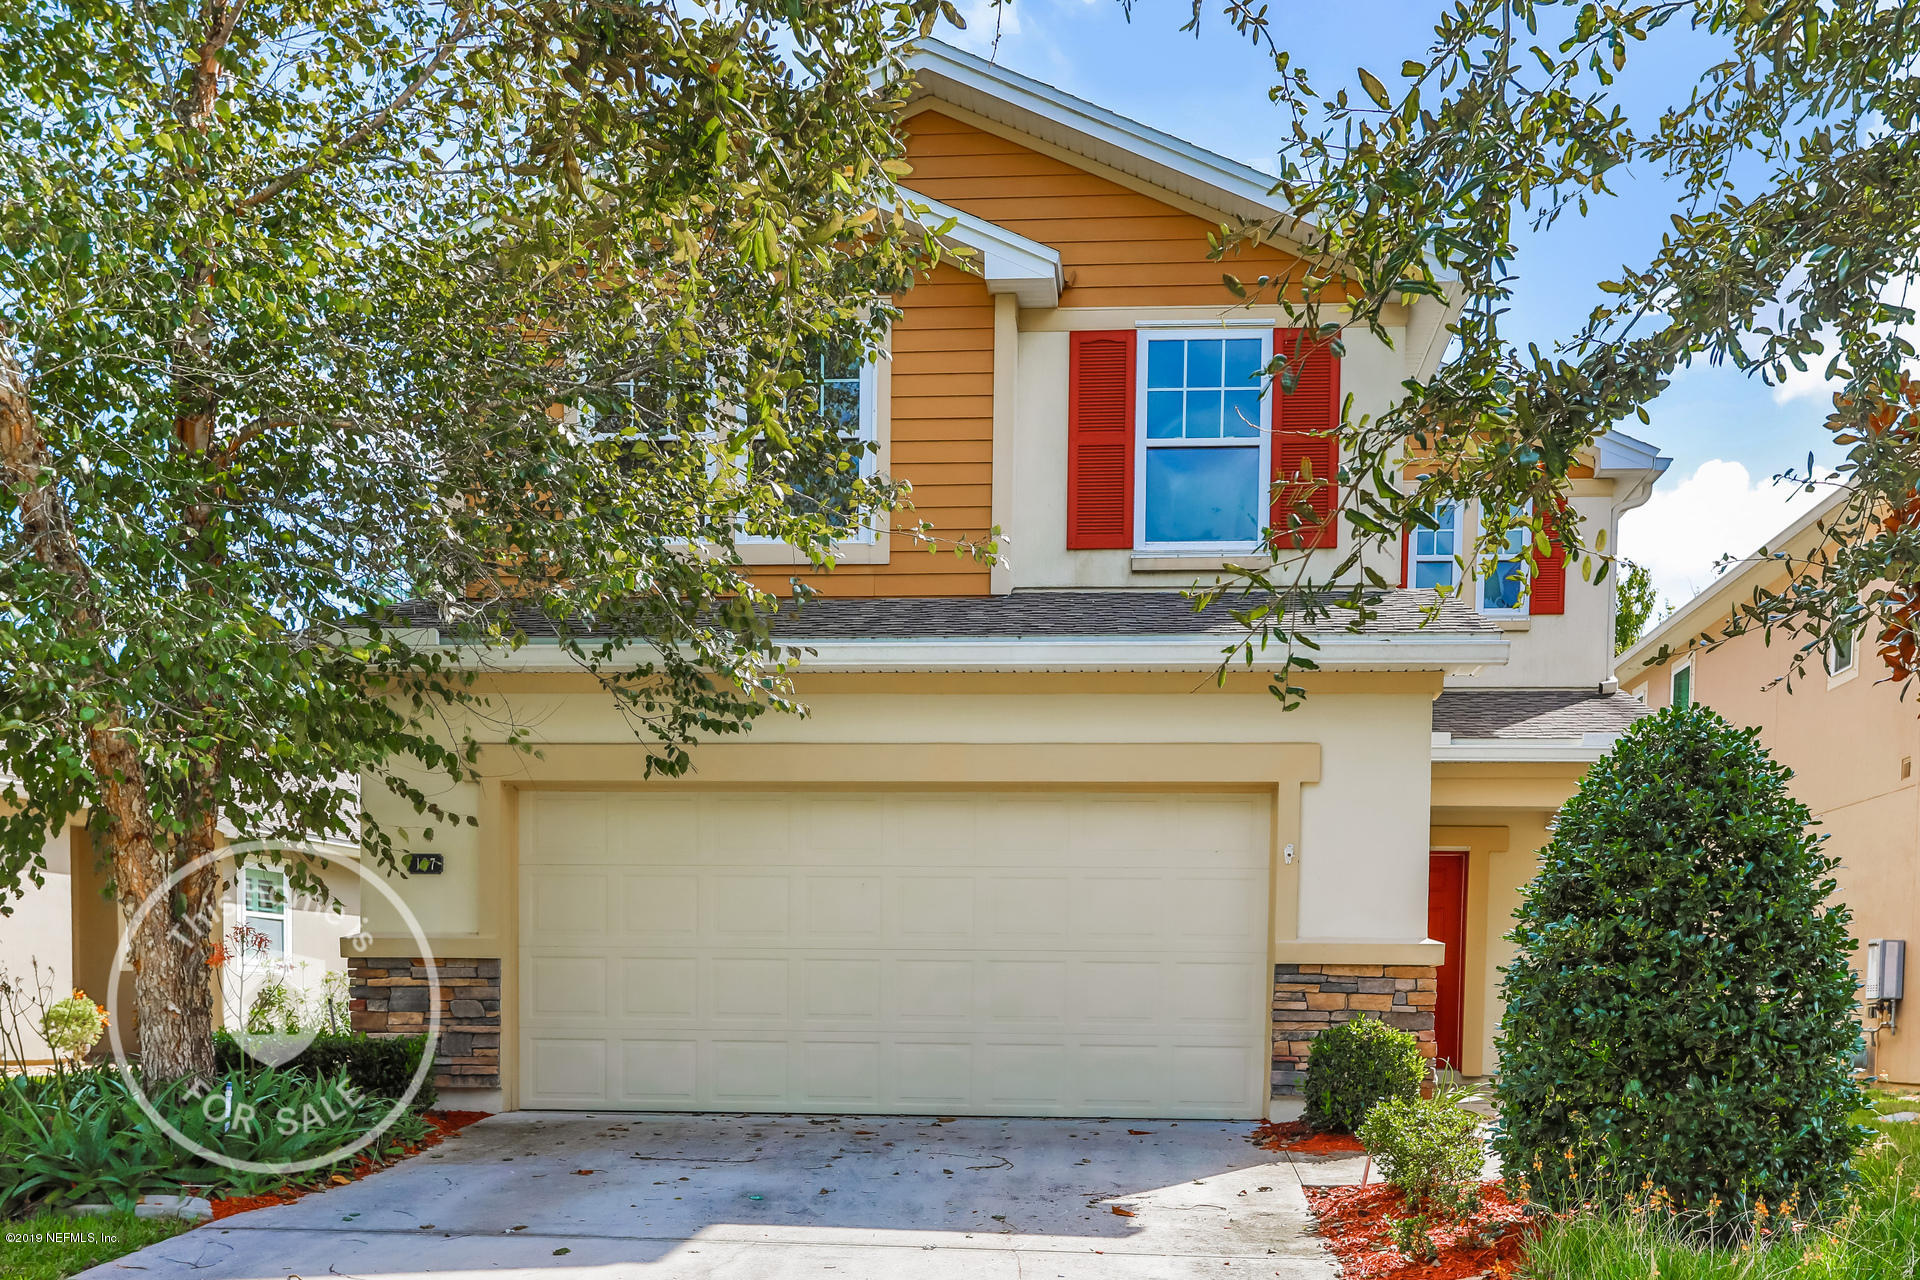 127 HOWLAND, PONTE VEDRA, FLORIDA 32081, 3 Bedrooms Bedrooms, ,2 BathroomsBathrooms,Residential - single family,For sale,HOWLAND,1022571